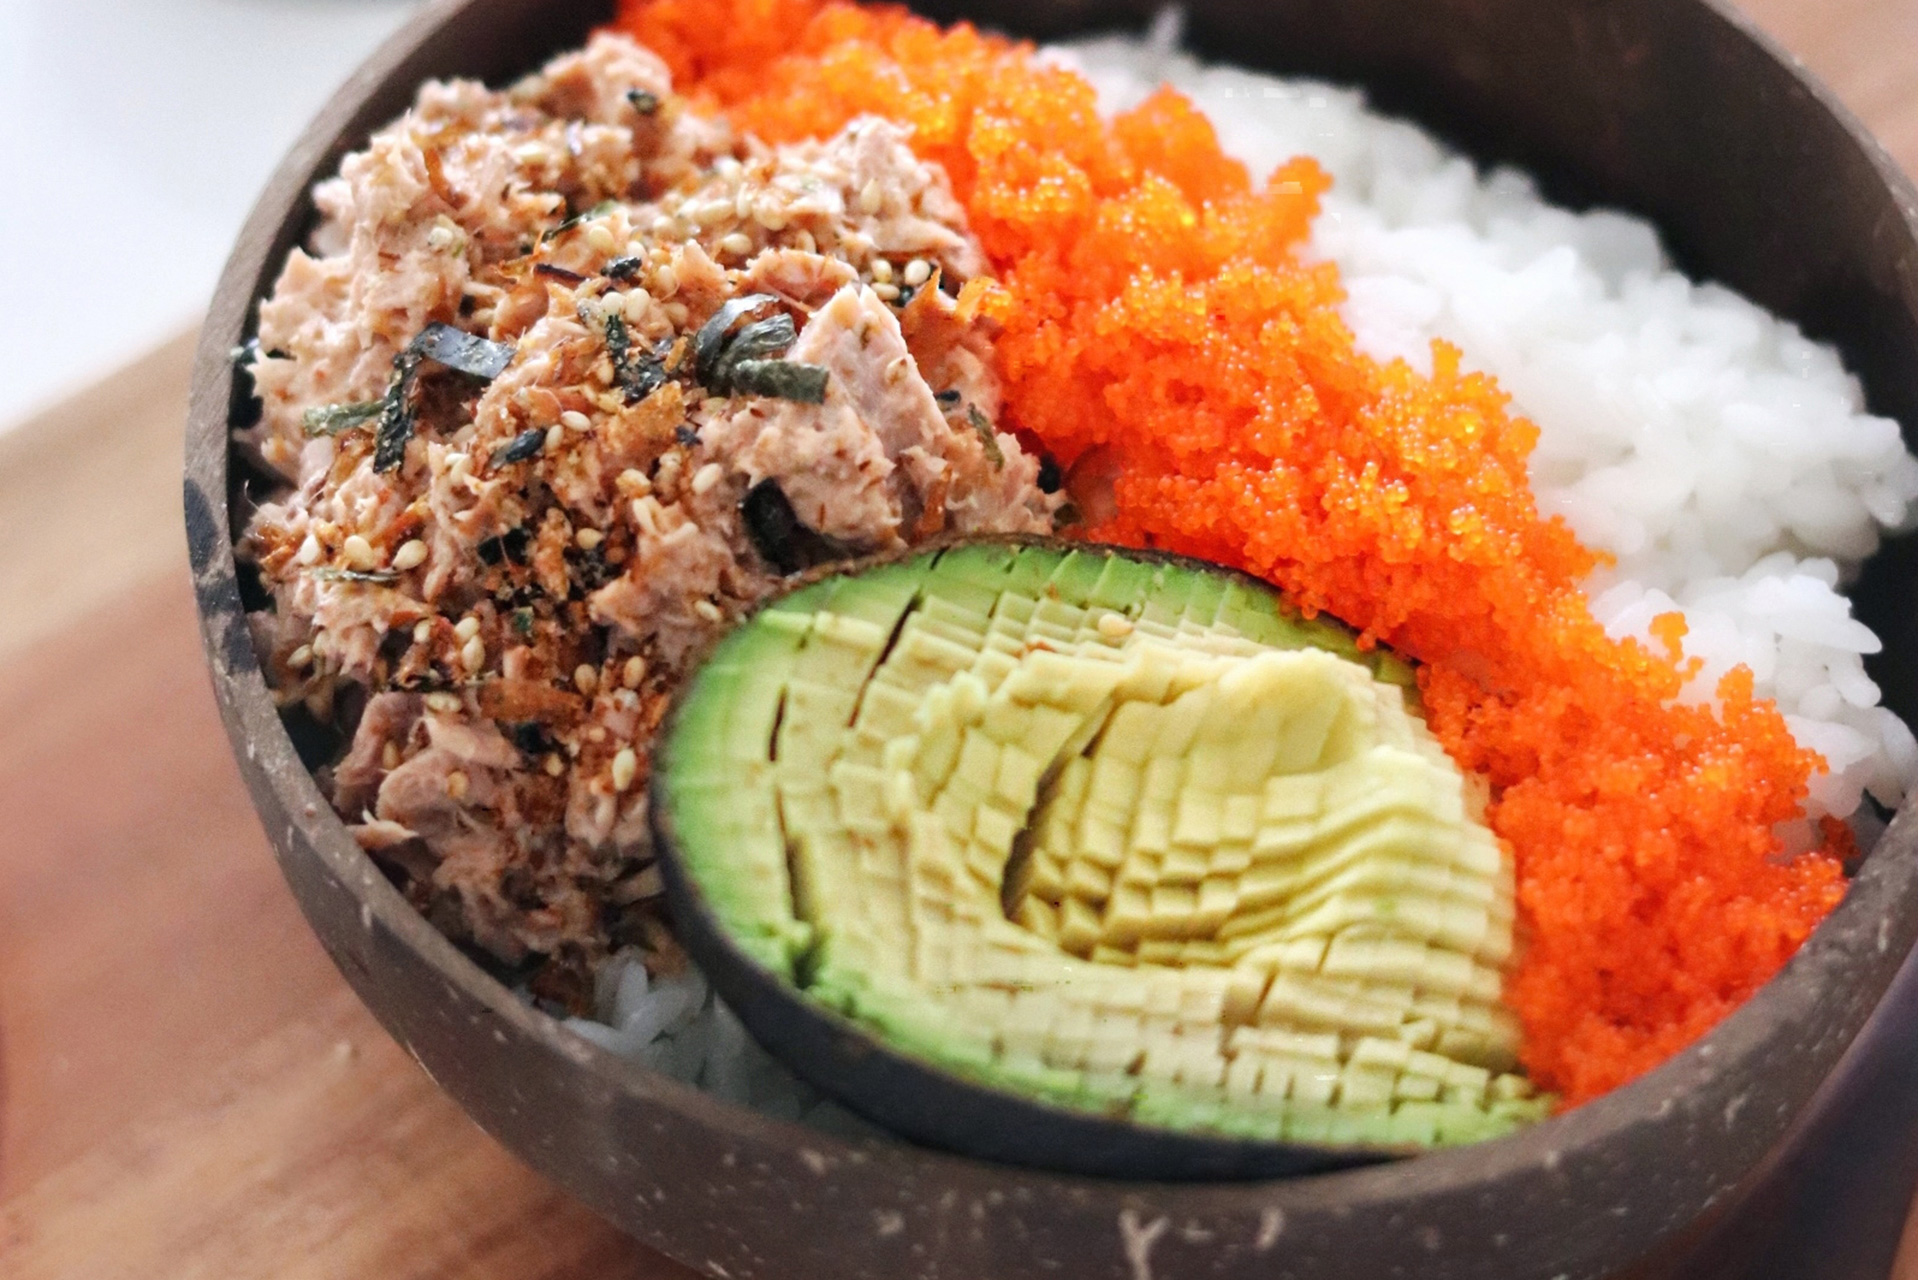 Spicy Mayo Tuna Bowl with Avocado and Masago